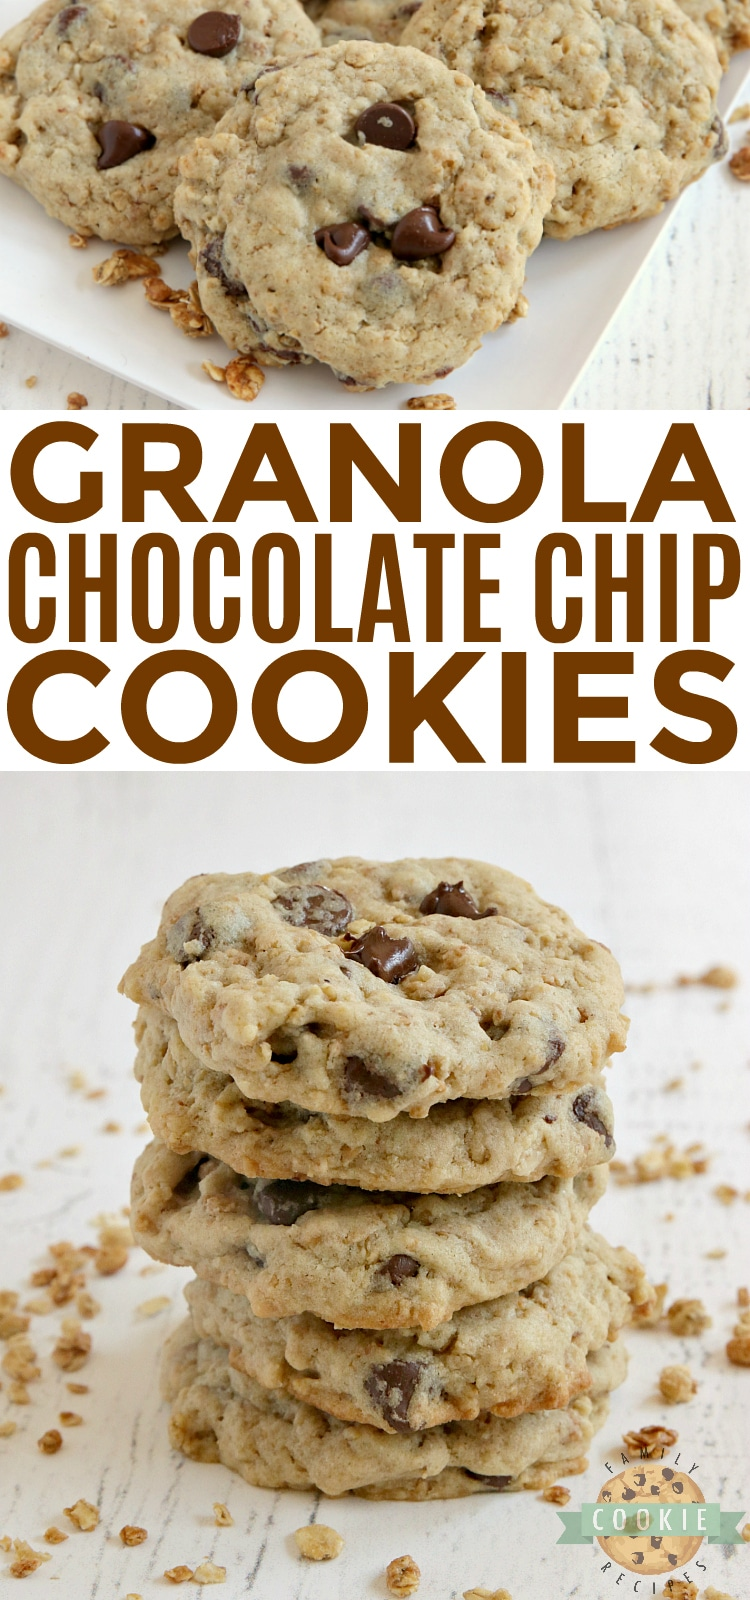 Granola Chocolate Chip Cookies are soft, chewy, full of protein and crunchy granola. With 5 grams of protein per cookie and a little bit of crunch, these have become my new favorite cookie!